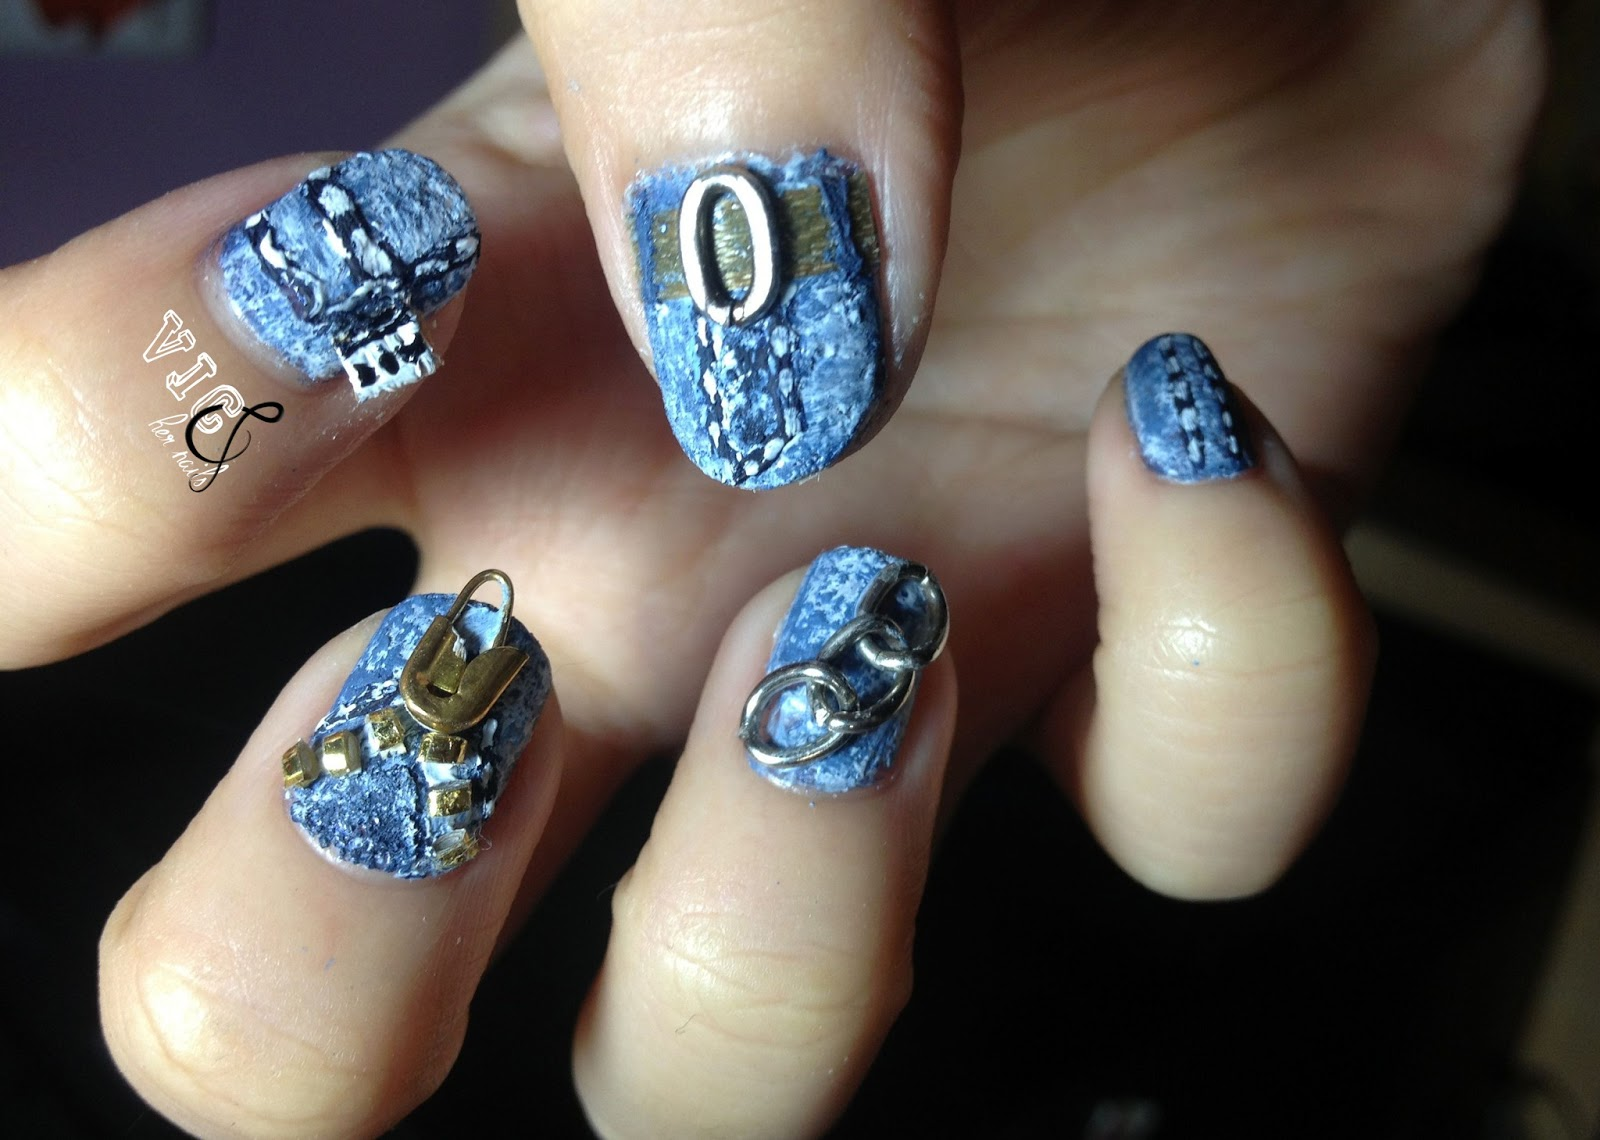 Vic and her nails my first nail art contest jeans nail art in 3d im sorry if its not a good mani because its my first time doing 3d nail art seriously first time ever thank you so much and i hope you prinsesfo Images